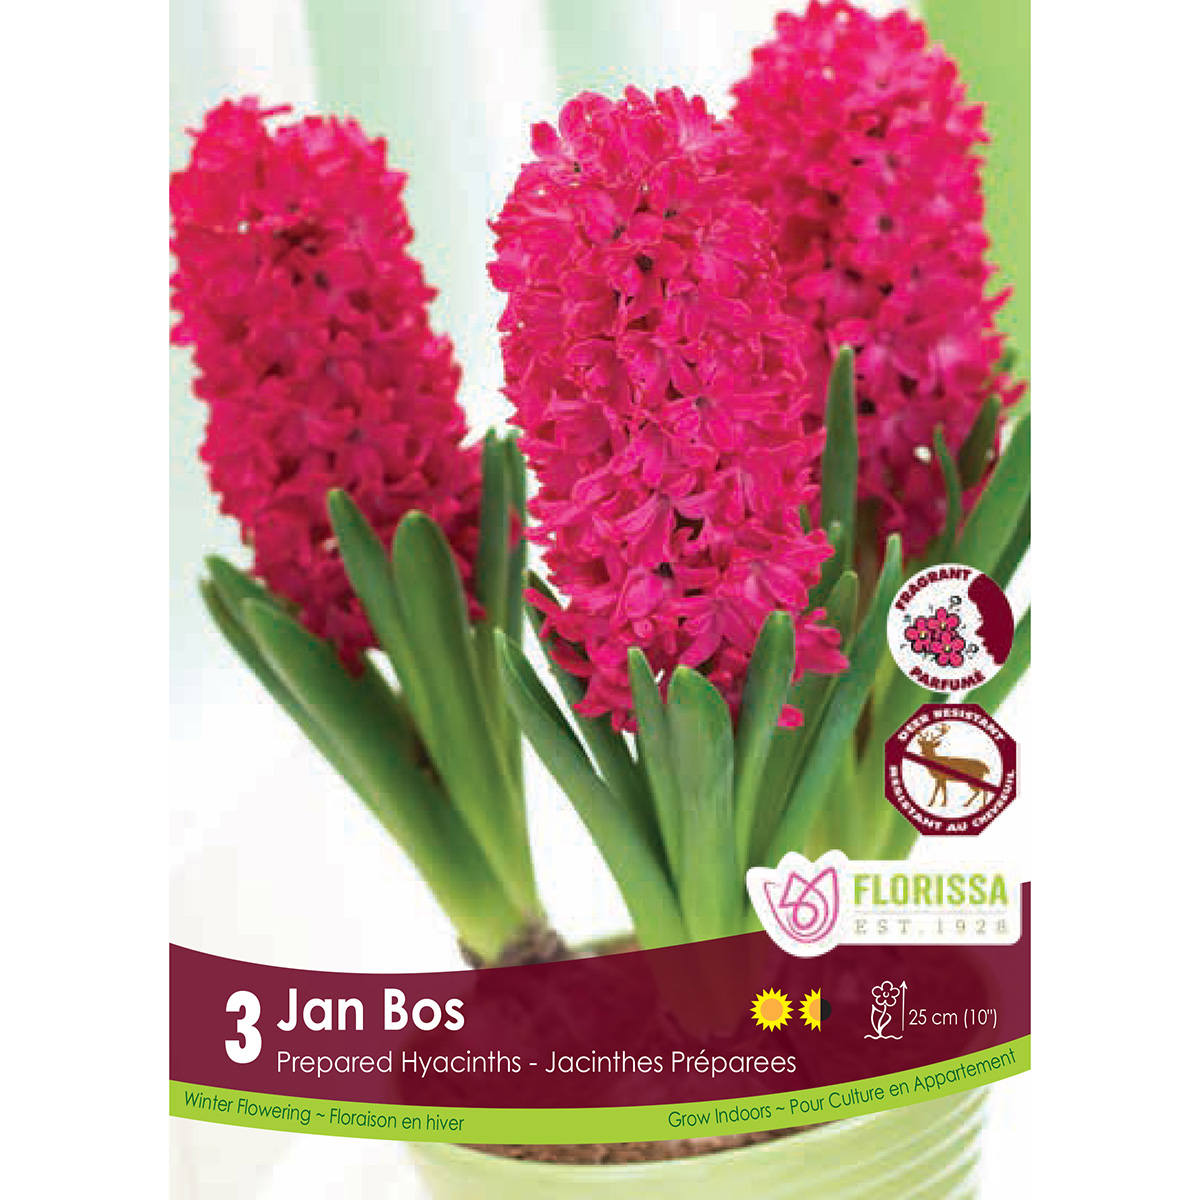 Prepared Hyacinth 'Jan Bos' Bulbs 3Pk